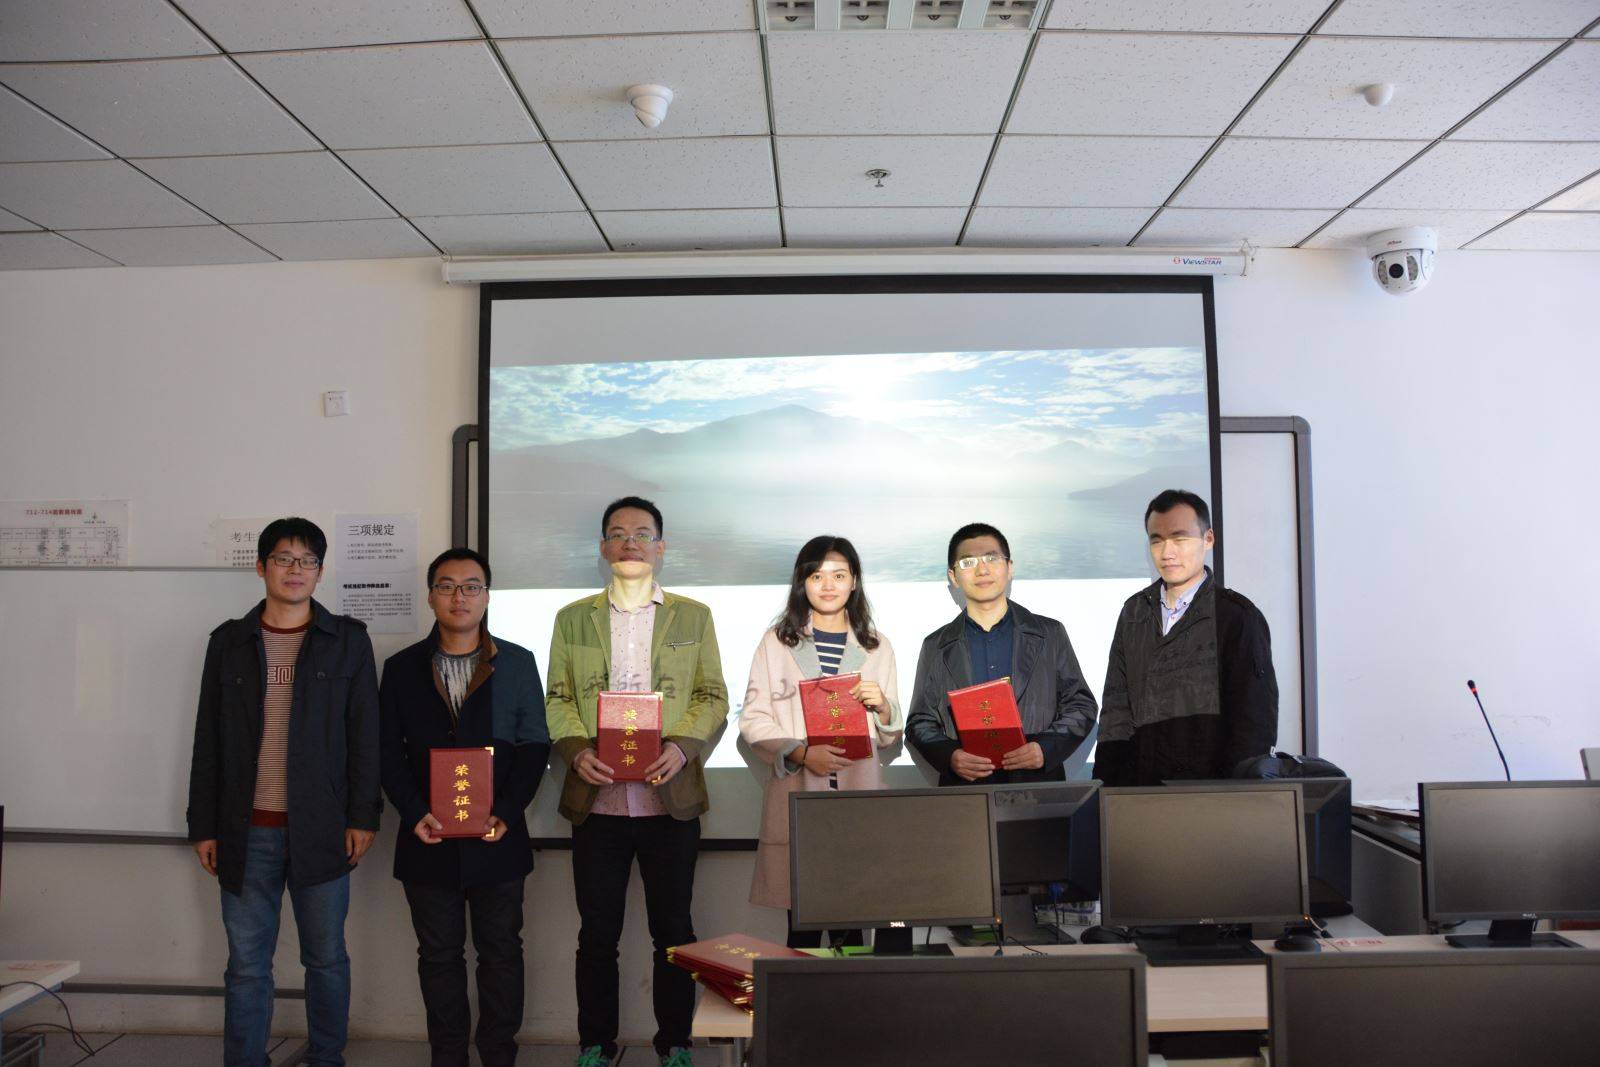 Shandong University MBA first campus photography contest sharing and presentation ceremony was held successfully